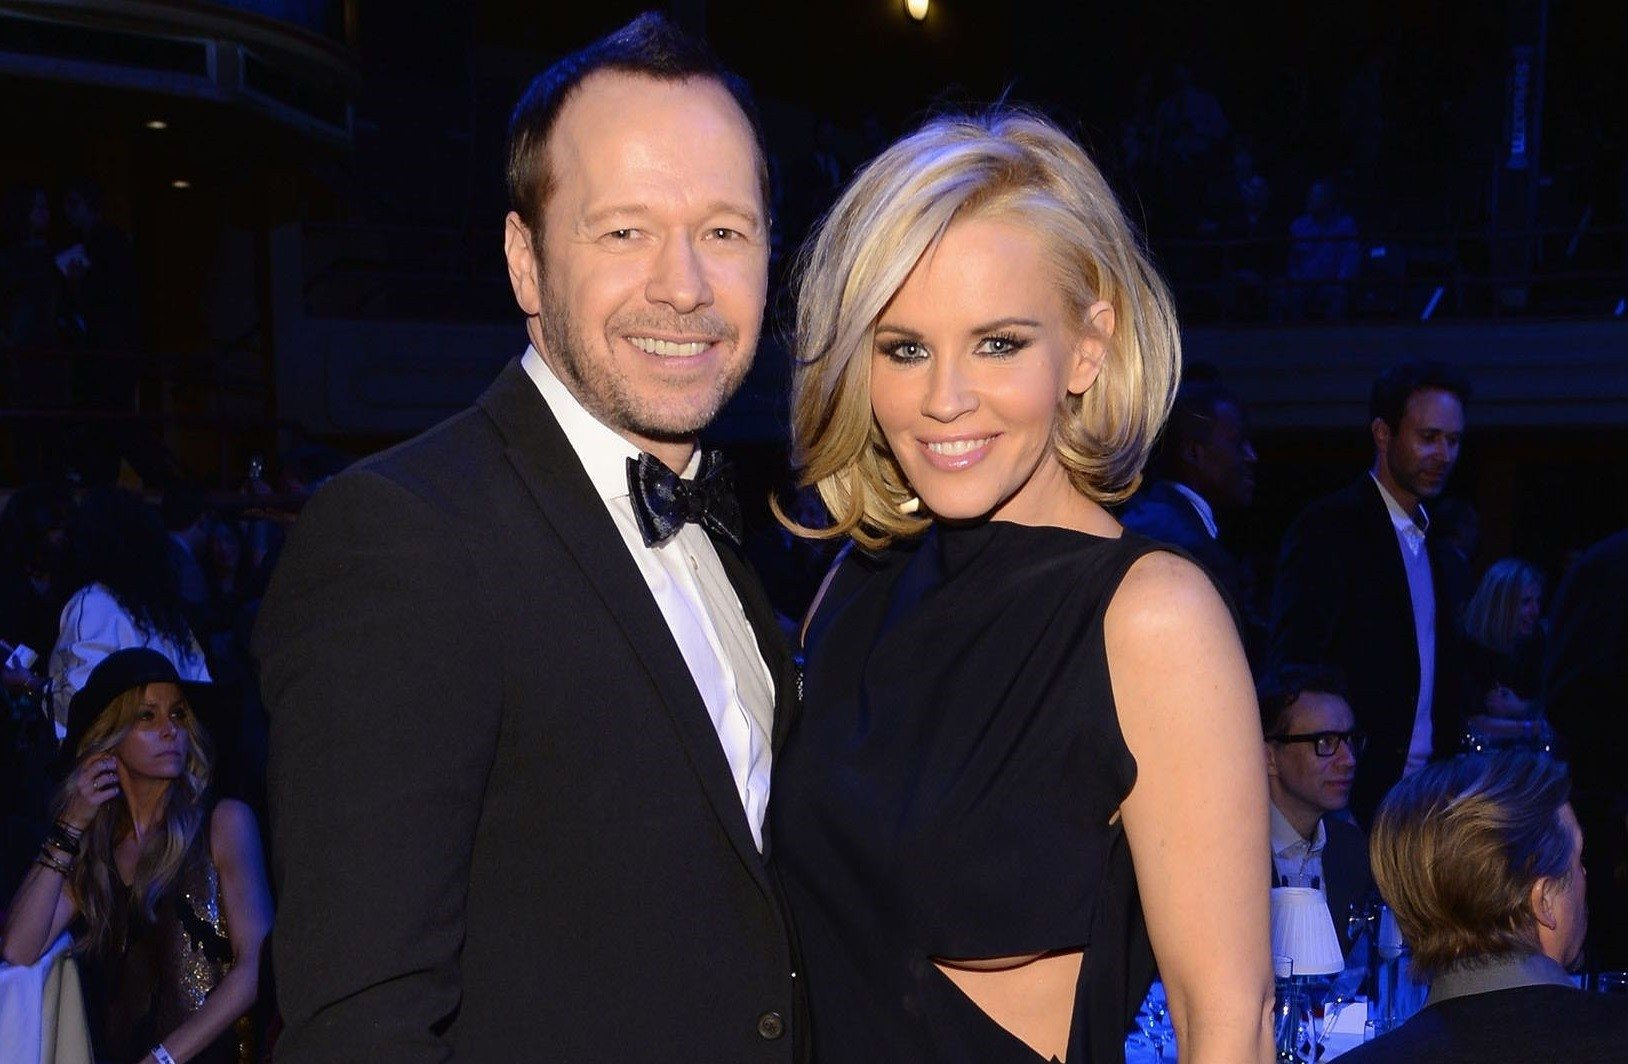 Donnie Wahlberg Net Worth: How Much is Donnie Wahlberg Worth